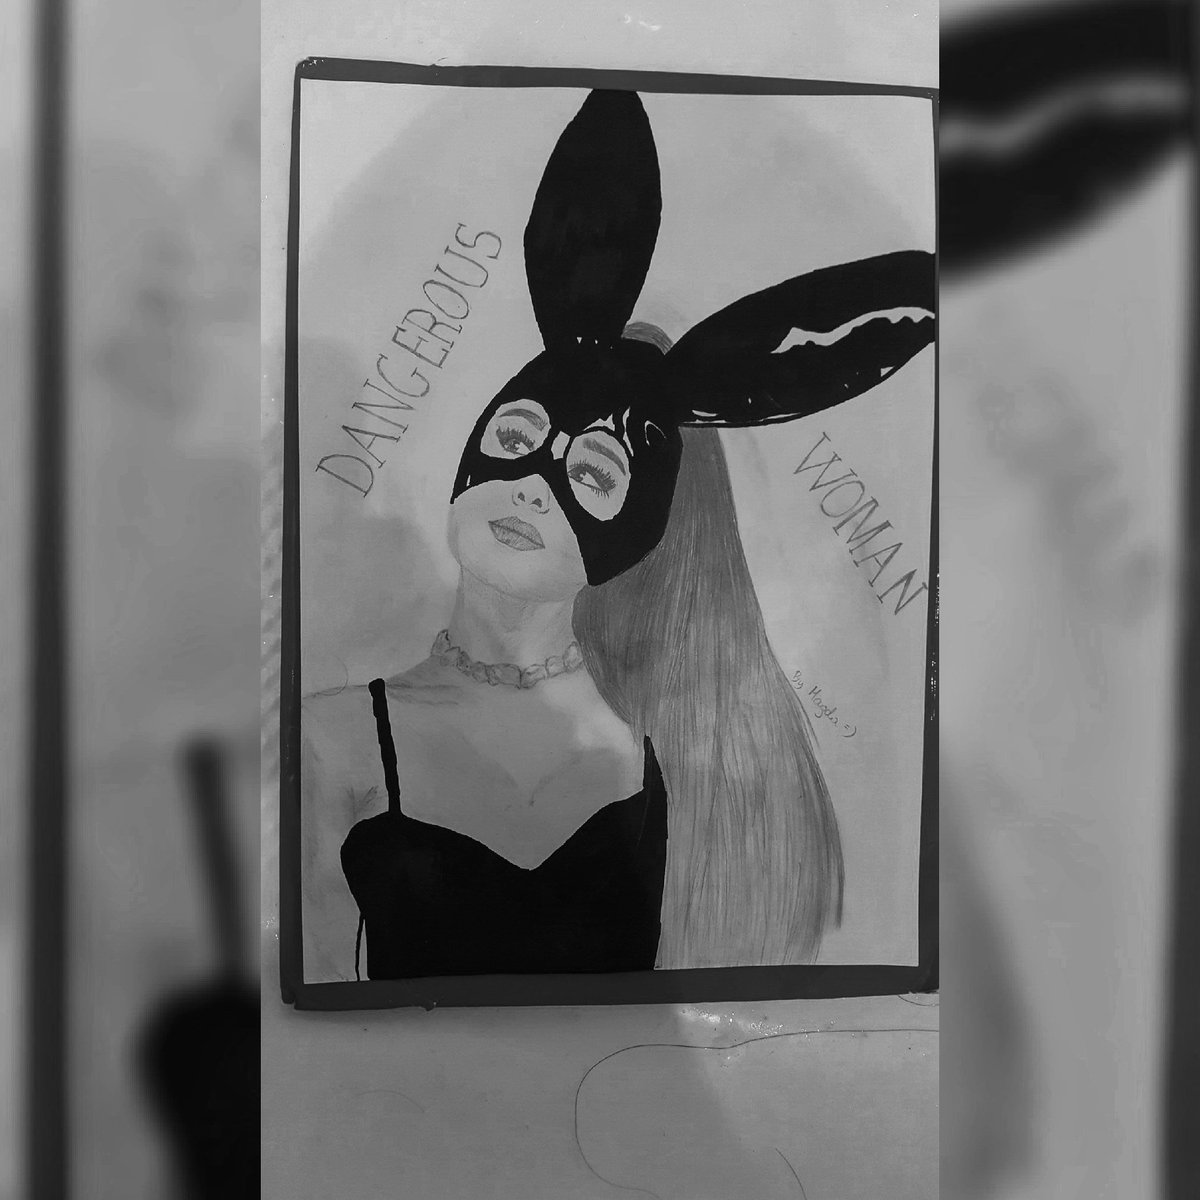 You&#39;re my life.  You&#39;re my everything.  I live you ♡  #DangerousWomanTourPoland #dangerouswoman #arianagrande #art #drawing  <br>http://pic.twitter.com/f6Q1kn7Ht9